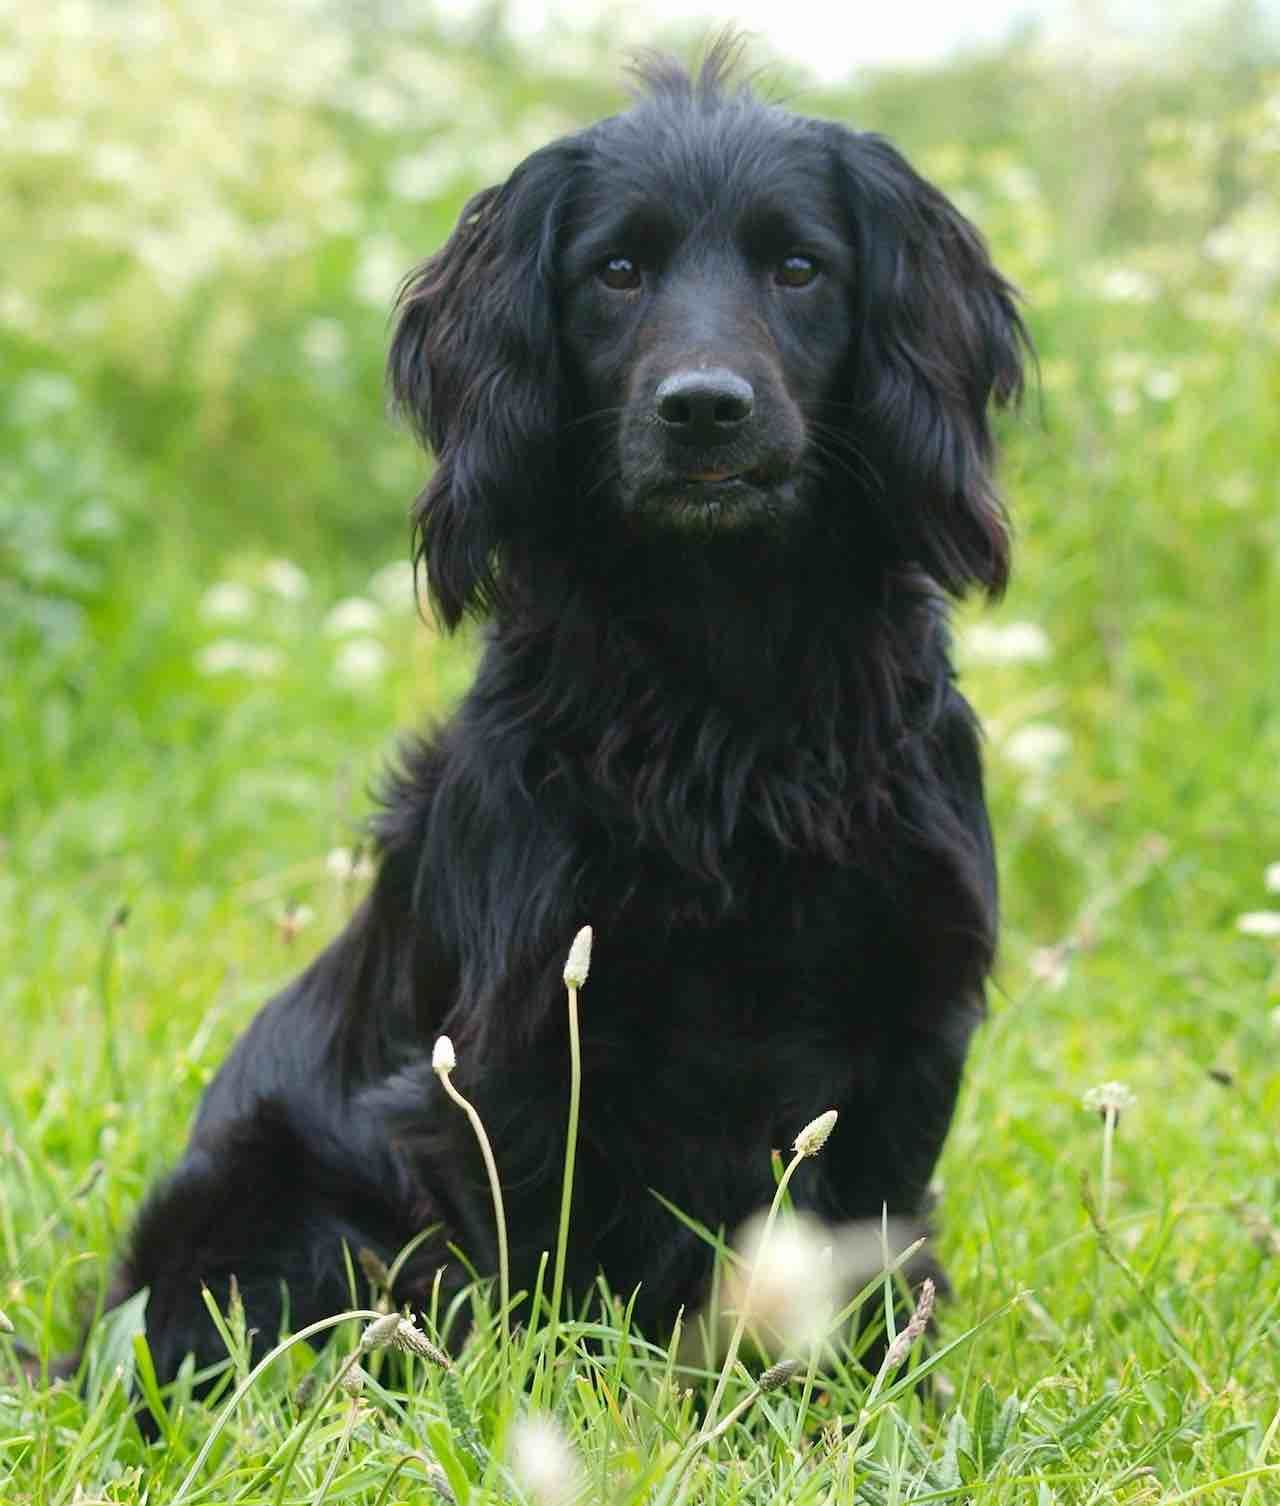 American Cocker Spaniel - Dog Breed info, images, videos ...